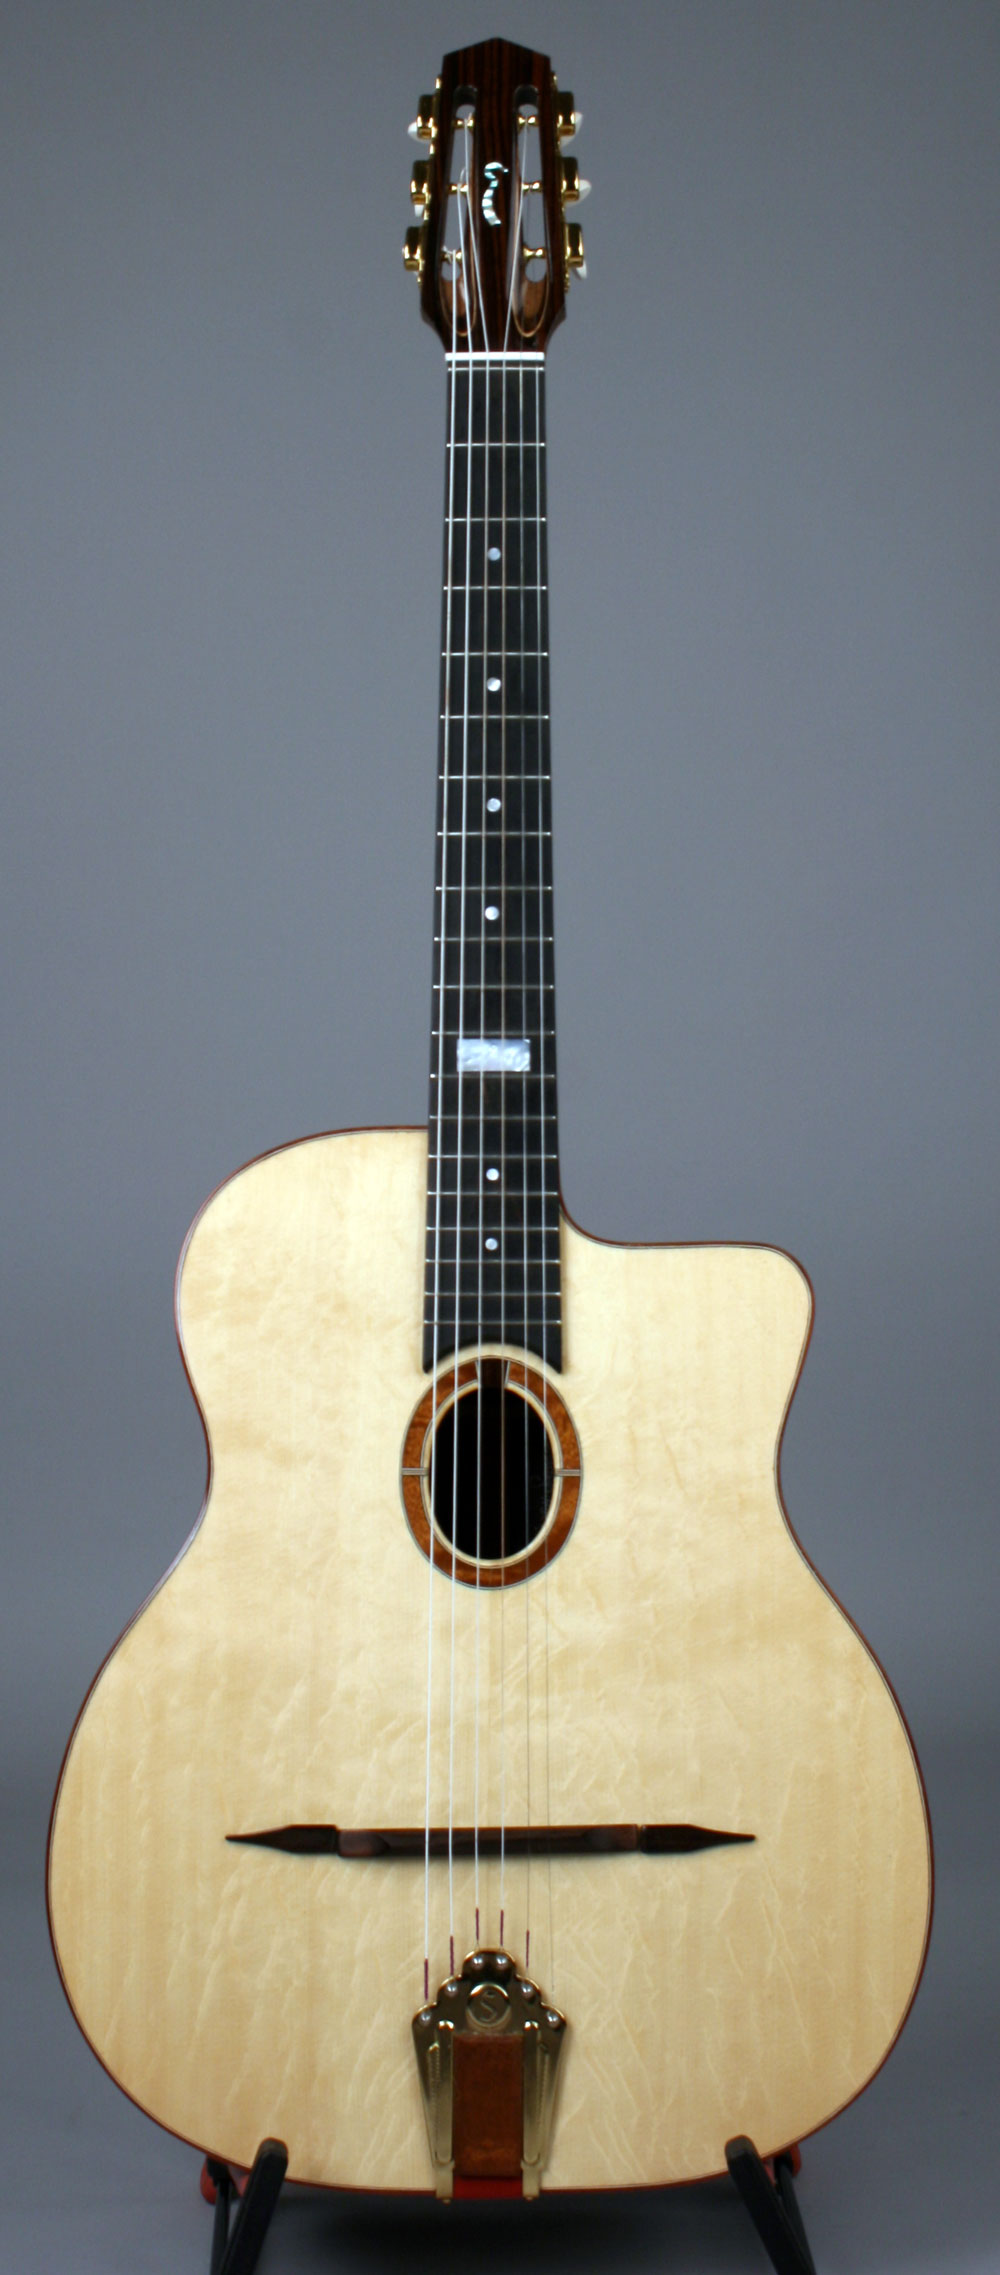 2011 Van Spronssen Selmer ***NEW PRICE***